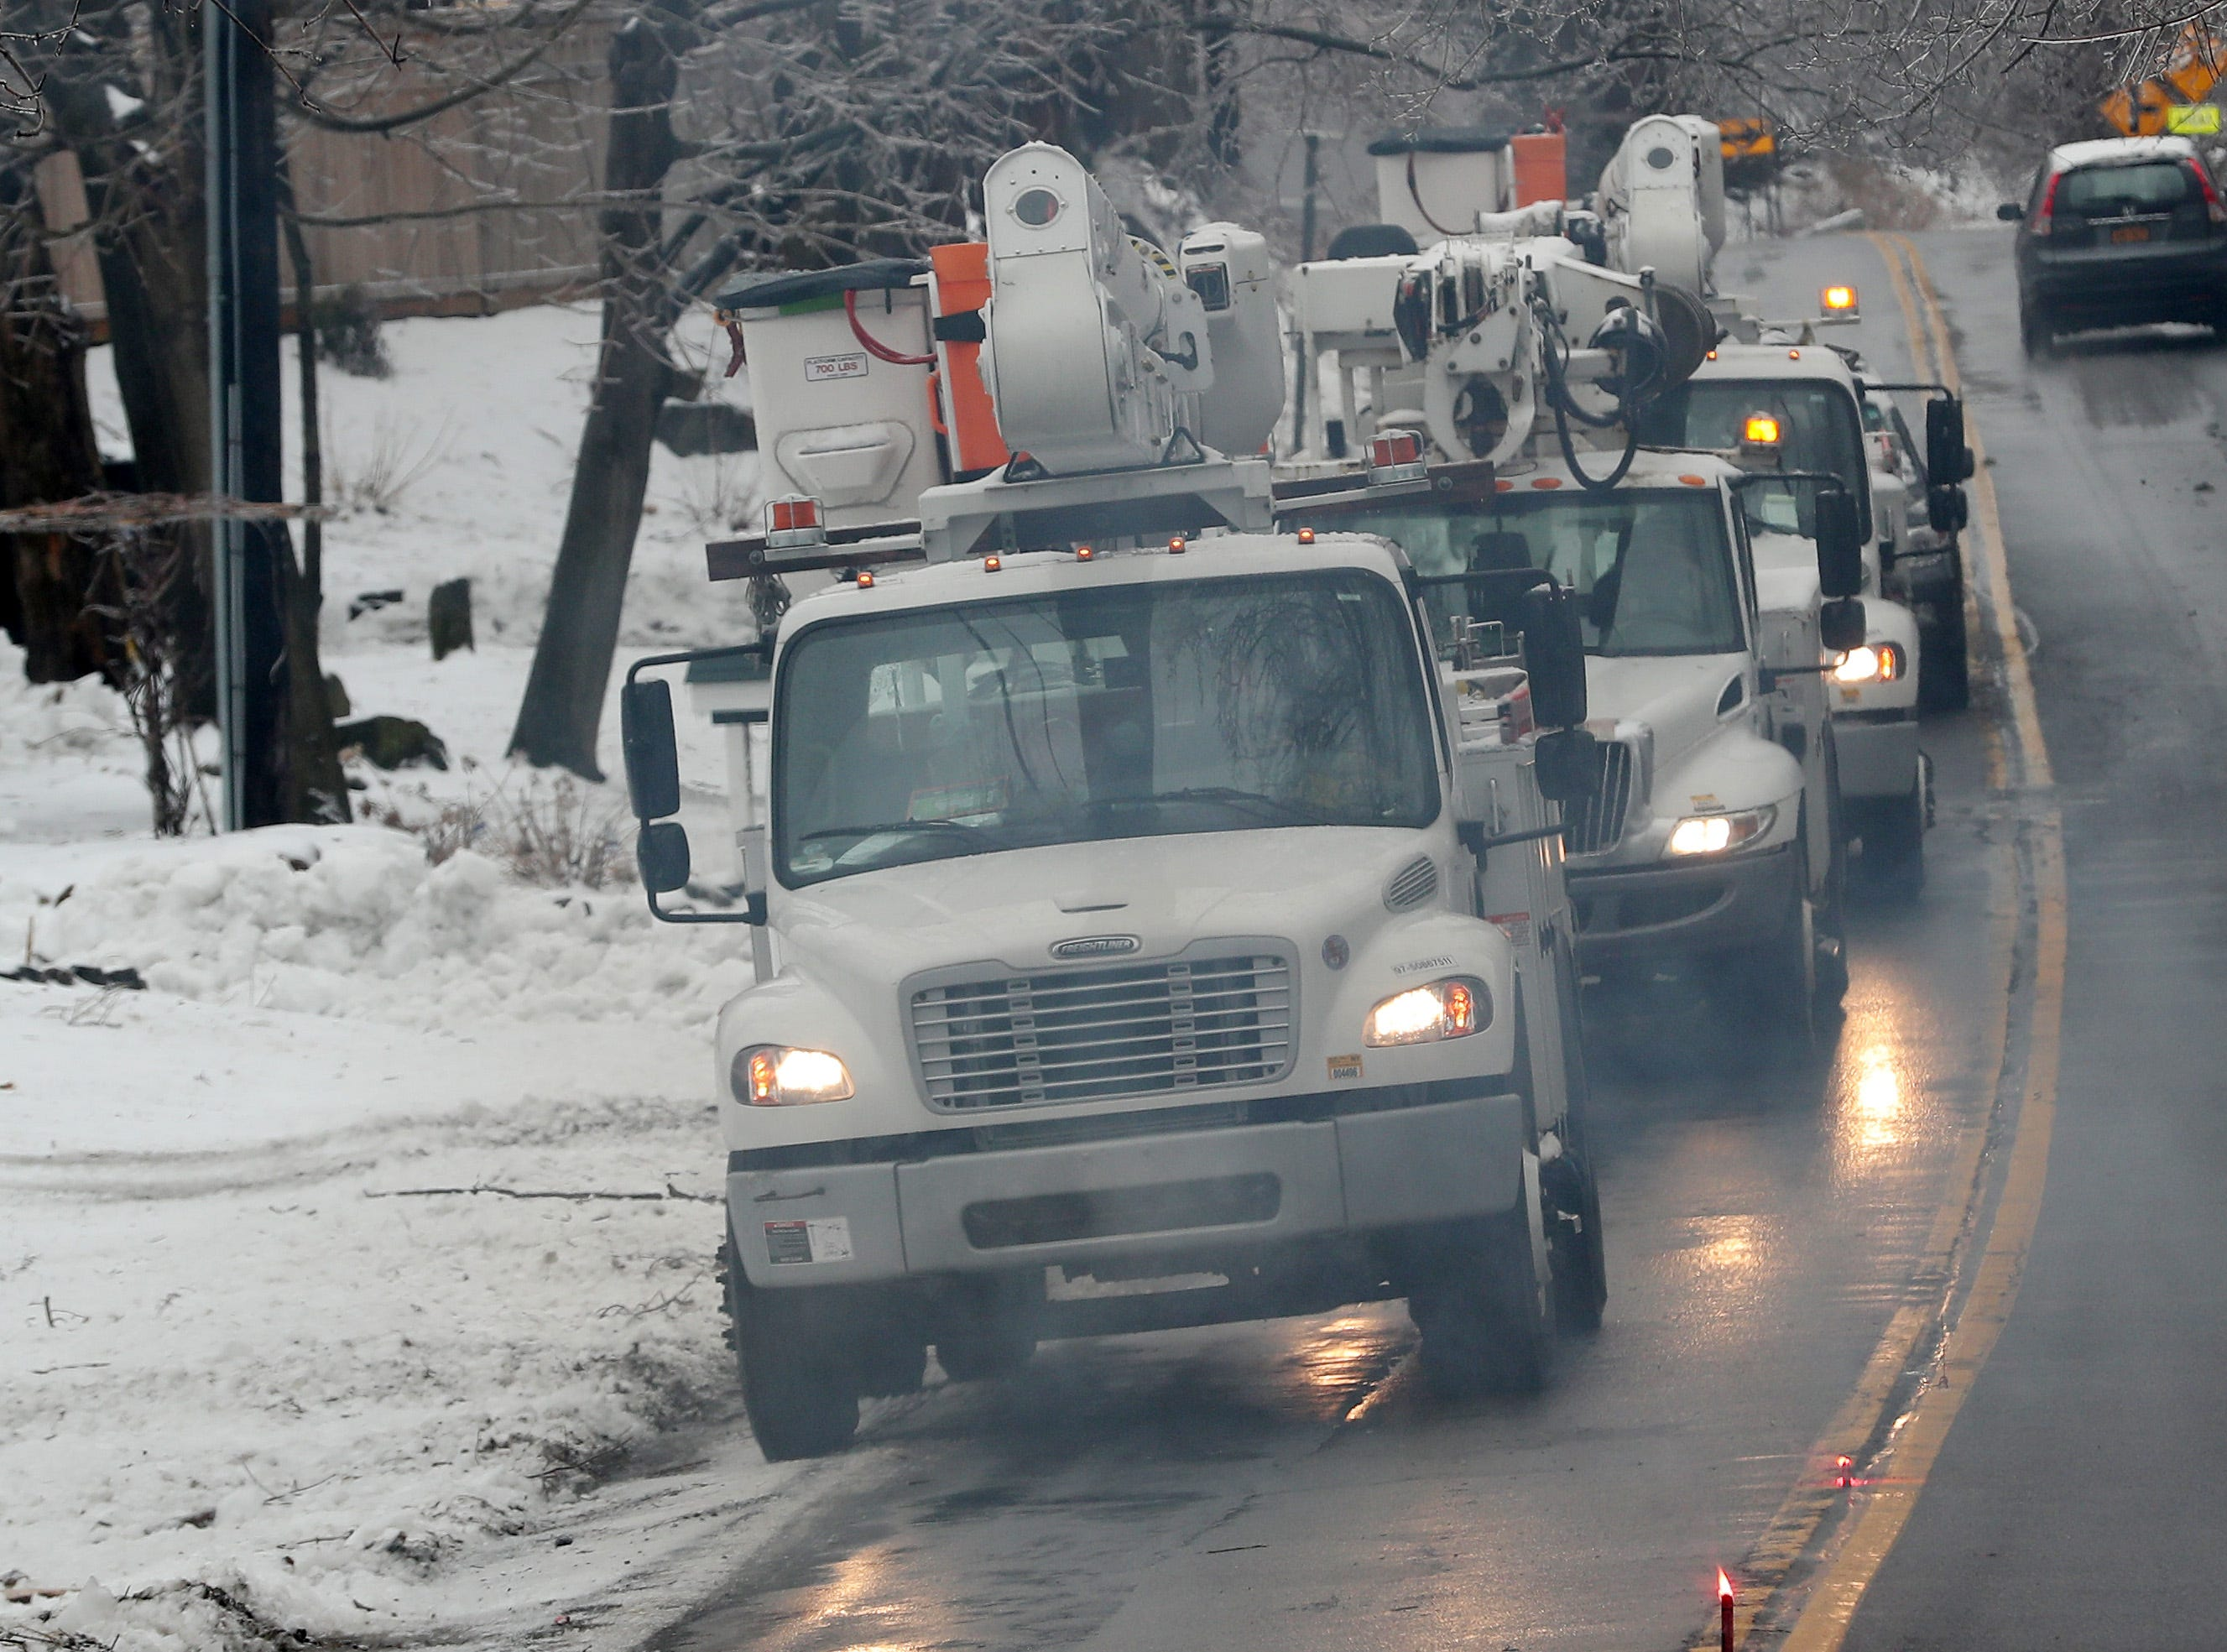 Utility crews from Northline Utilities travel along Route 121 in North Salem Jan. 20, 2019. Northline Utilities is based in Au Sable Forks, N.Y., and had crews working in the area to assist NYSEG.